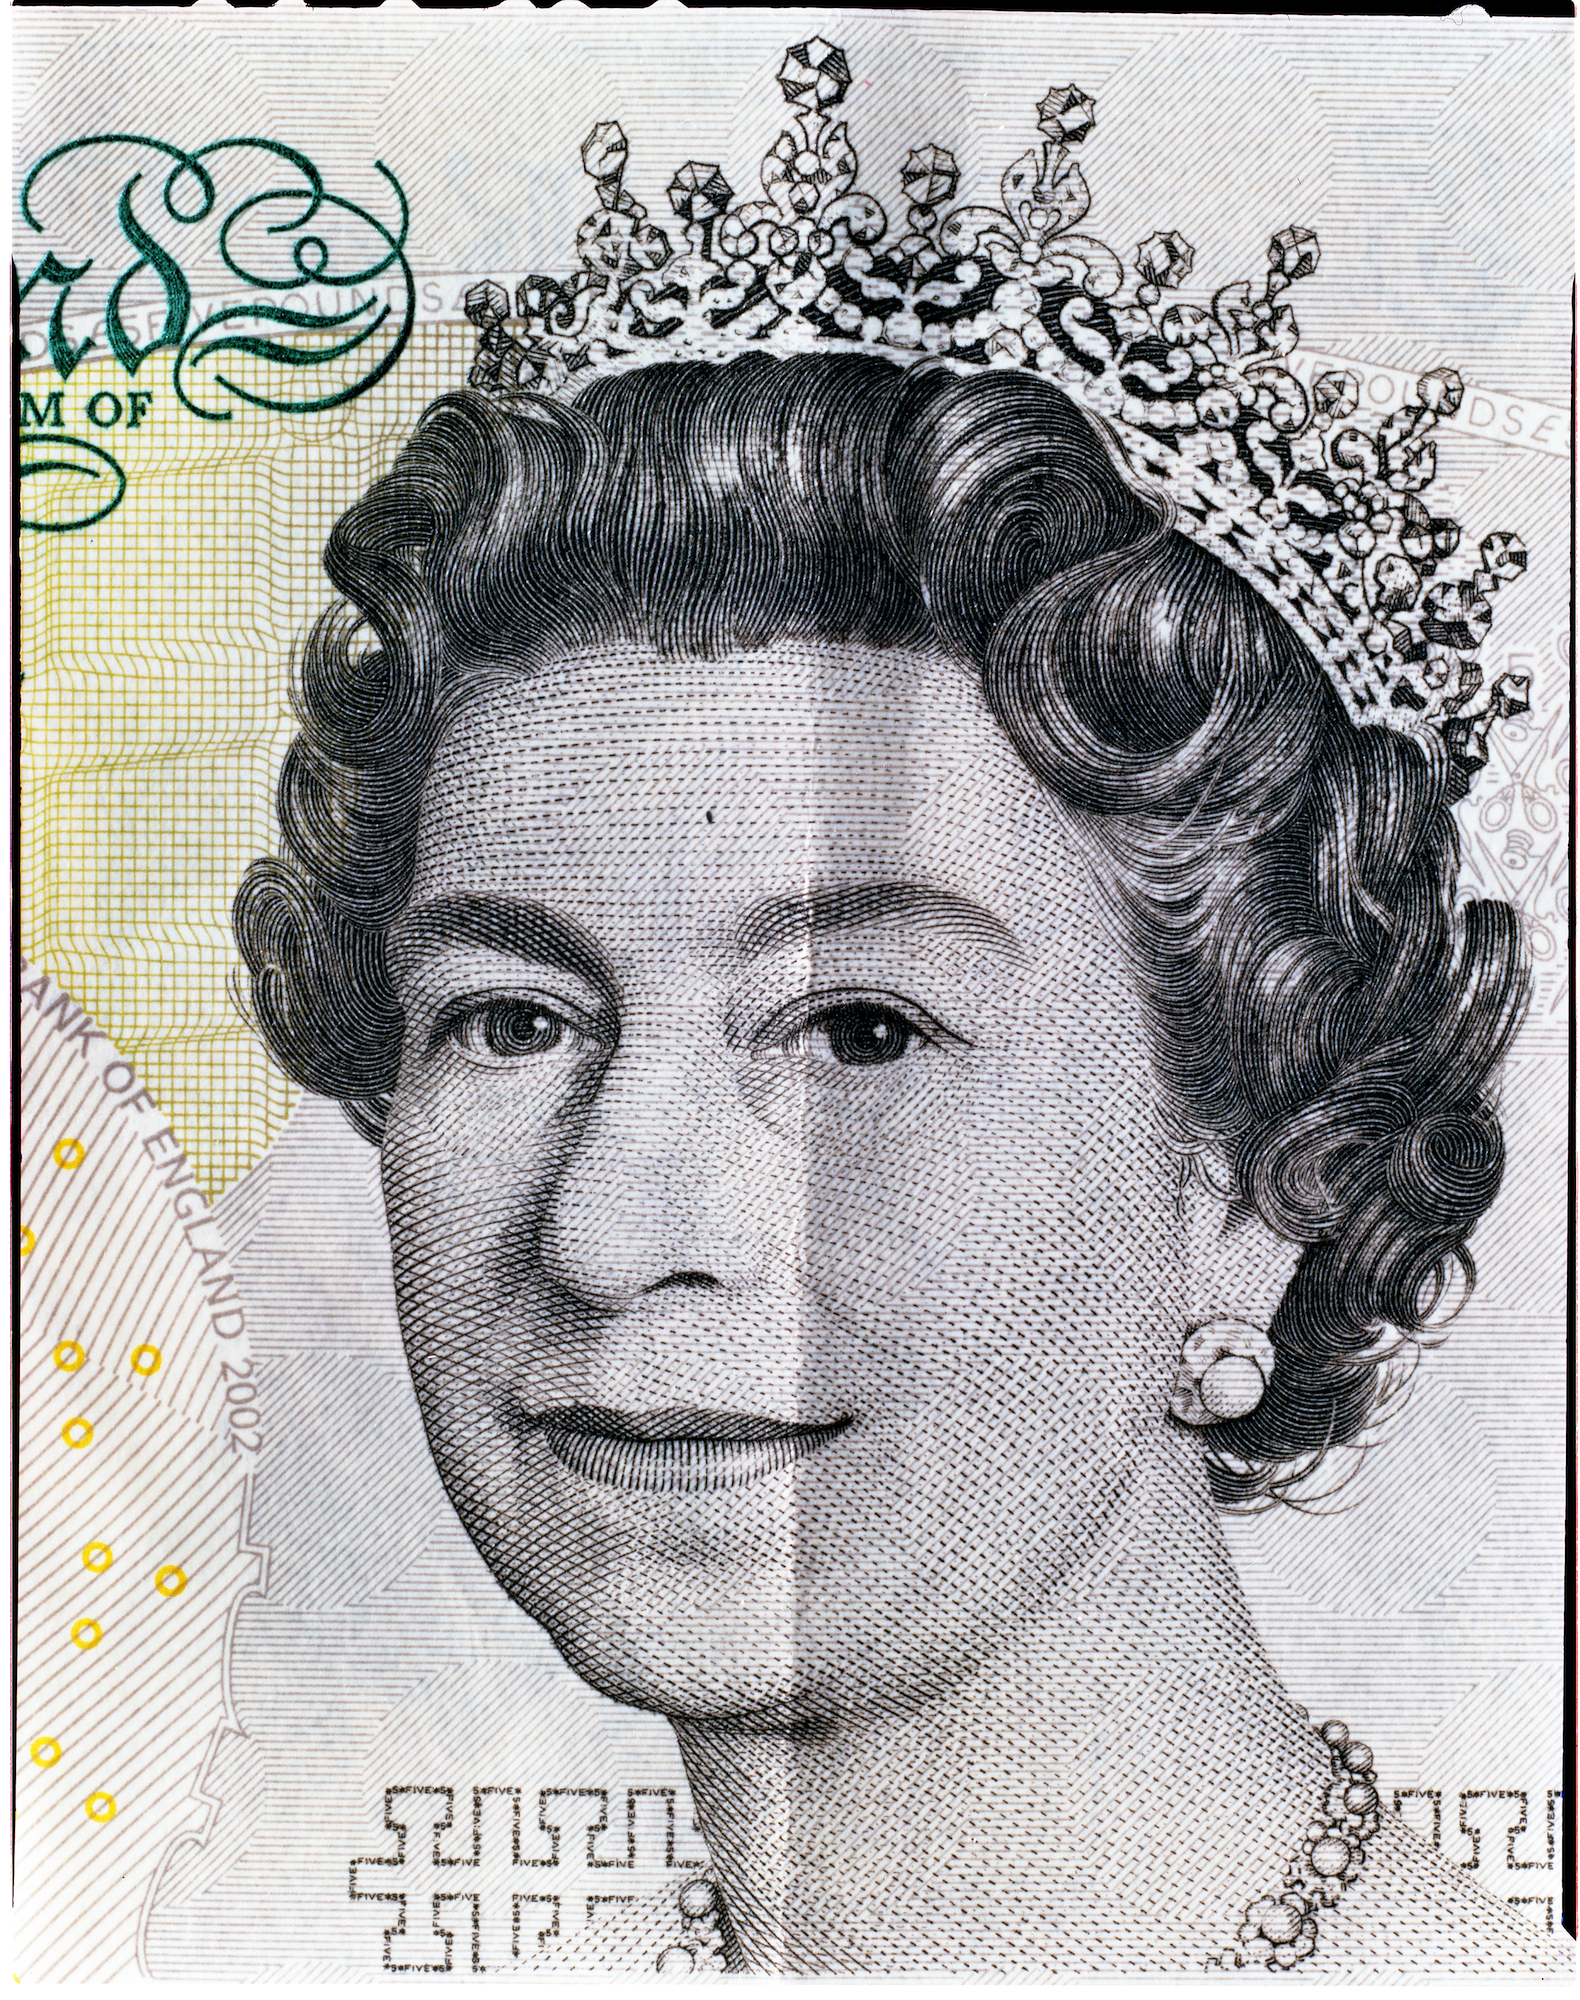 5 Pounds Sterling - The Sewing Queen